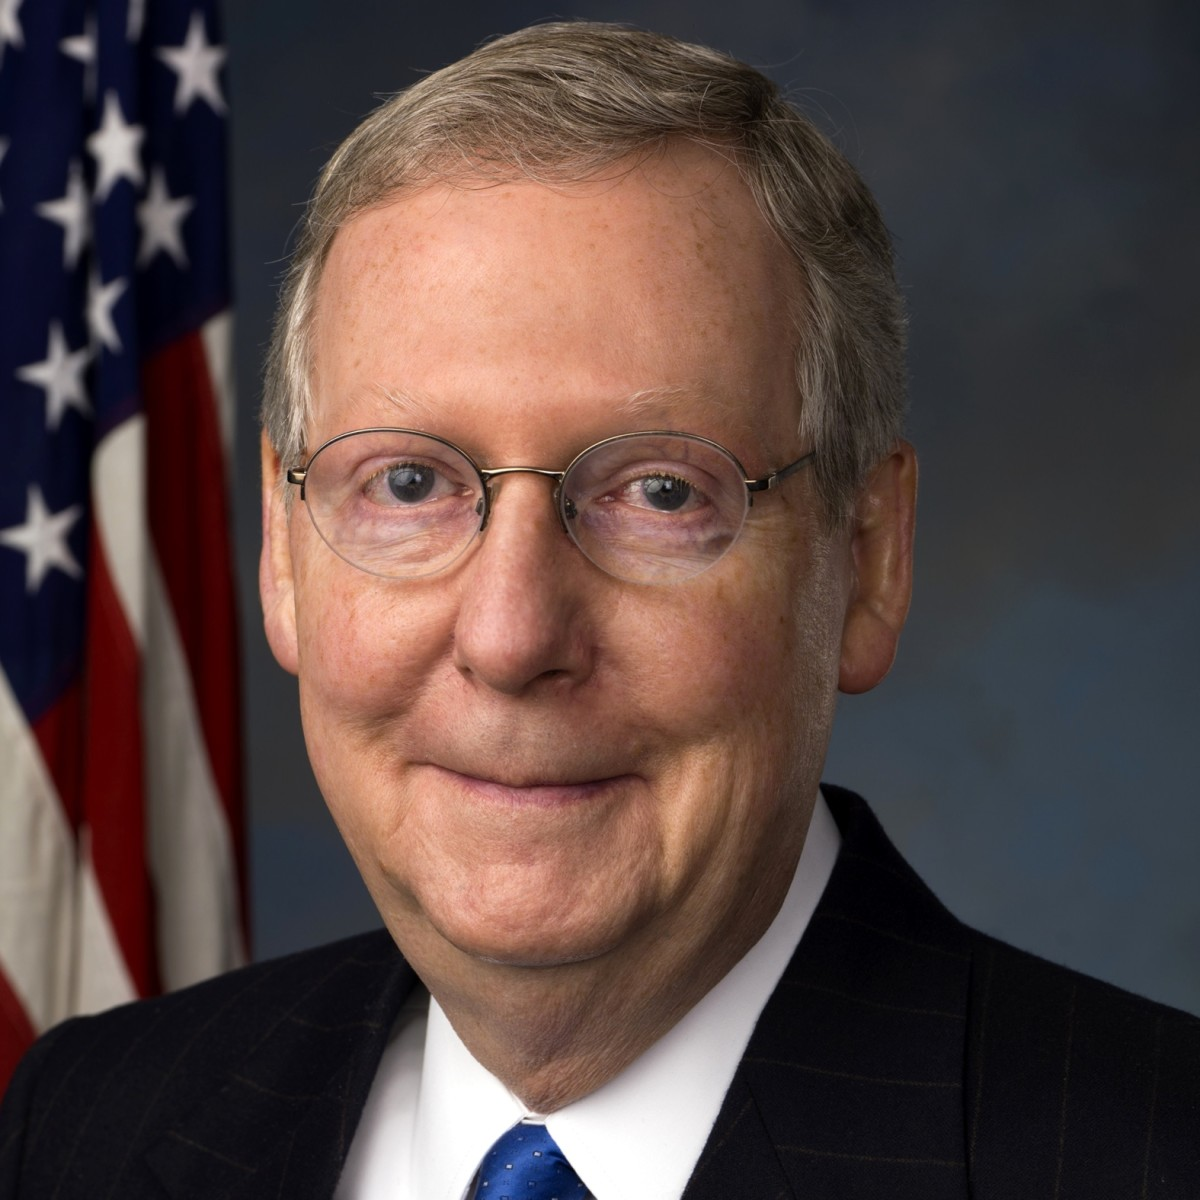 Mitch McConnell official Senate photo